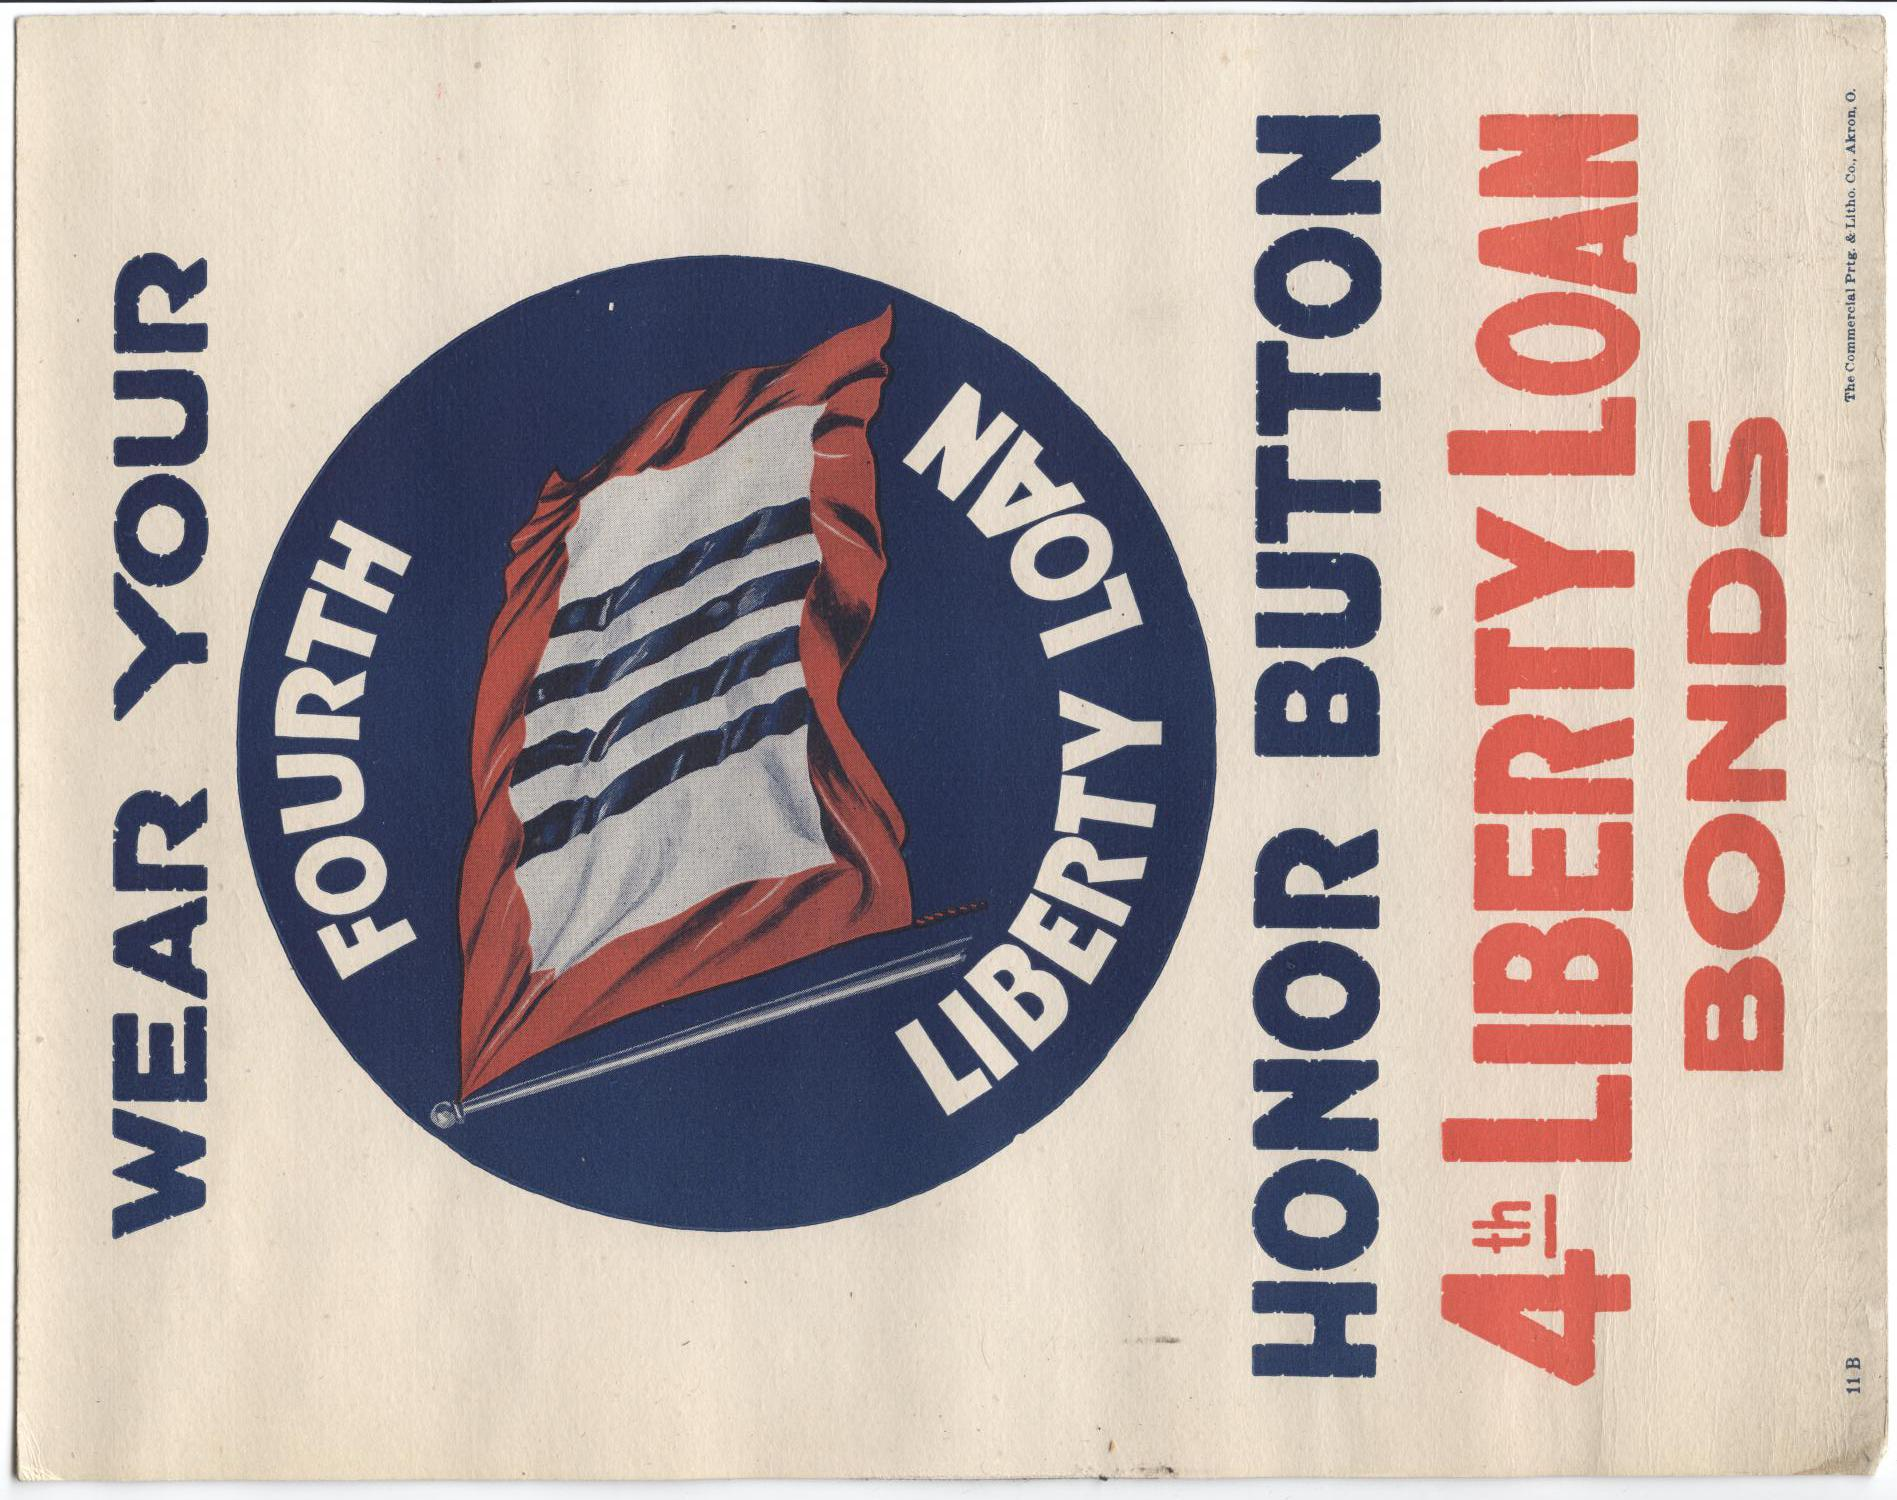 Wear your honor button, 4th Liberty Loan bonds                                                                                                      [Sequence #]: 1 of 1